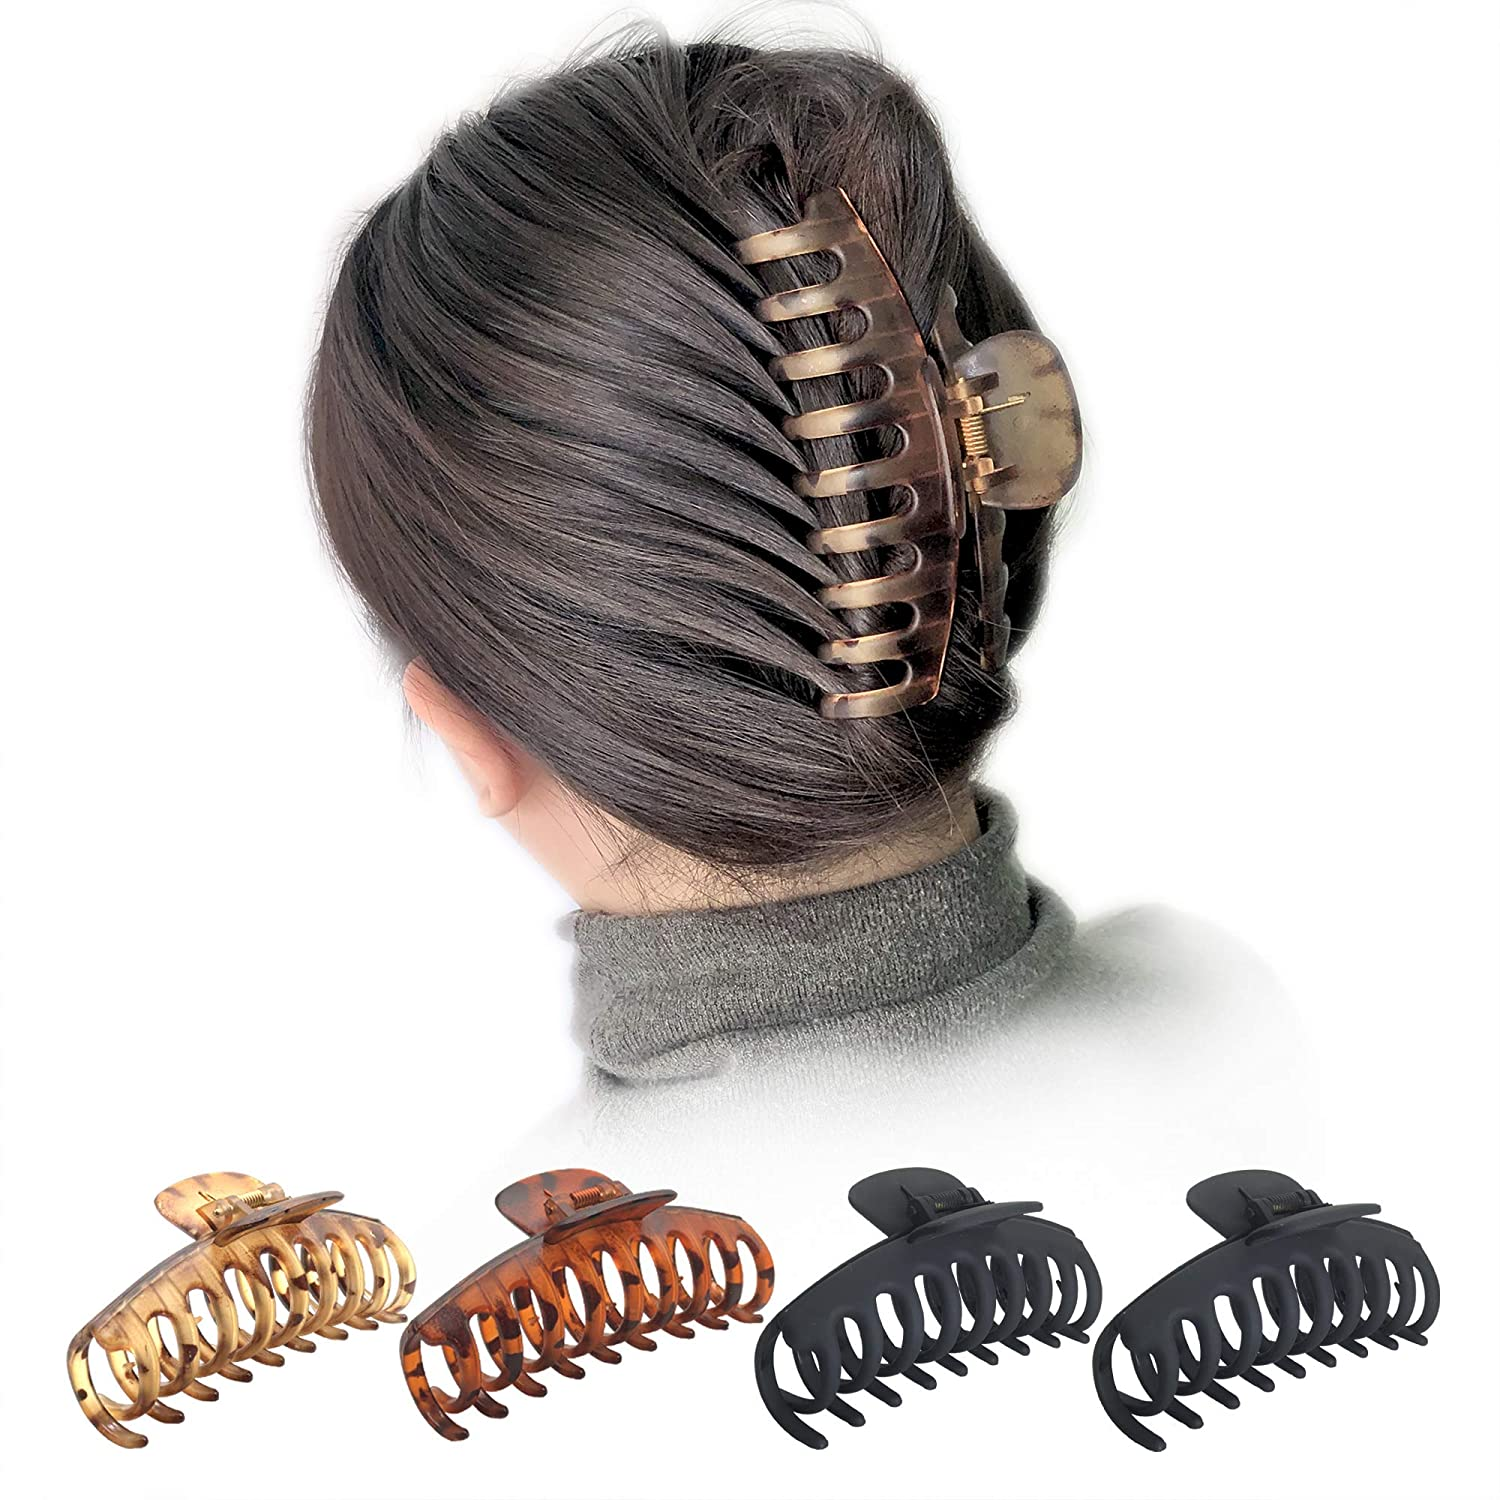 """OWIIZI Large Hair Claw Clips for Women 4.3"""" Matte Leopard Jumbo Hair Clips Non-Slip Ponytail Barrette Strong Hold Claw Clips for Girls Long Thick Hair (4Packs) : Beauty"""